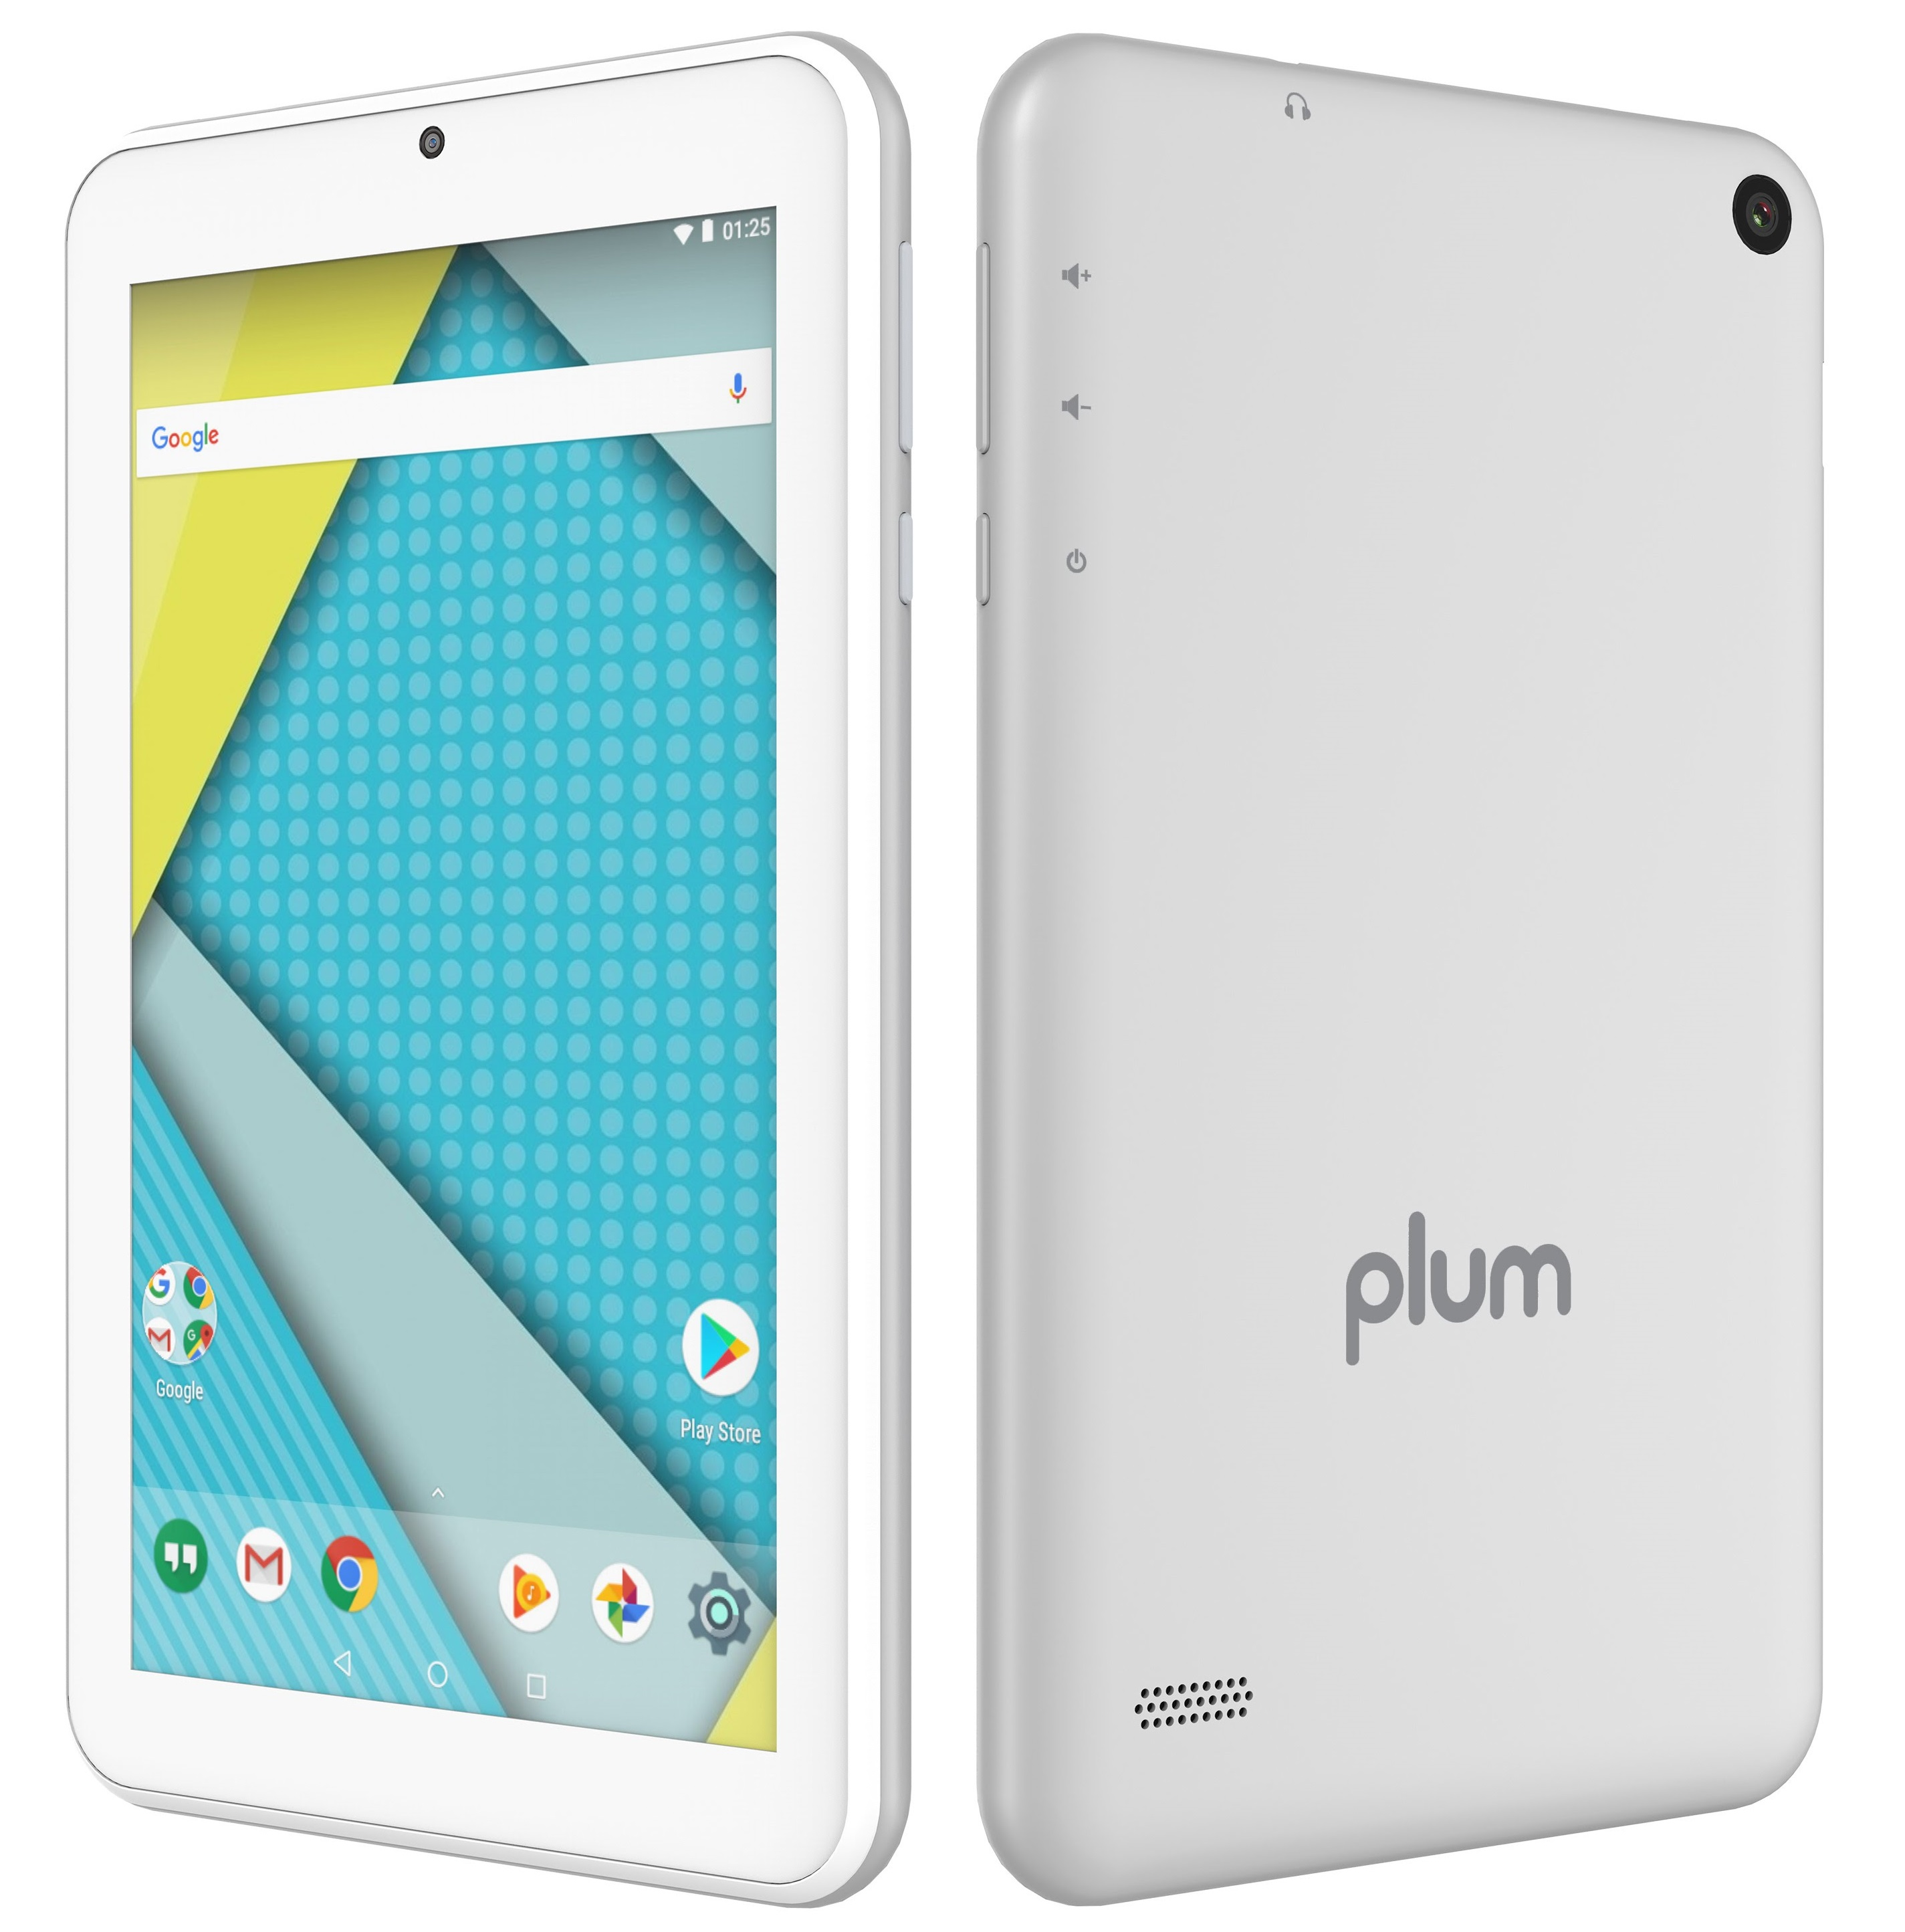 "Plum Optimax 2 - Android Tablet 7"" Display WiFi Dual Camera Quad Core Slim Body Beautiful Design - Silver"